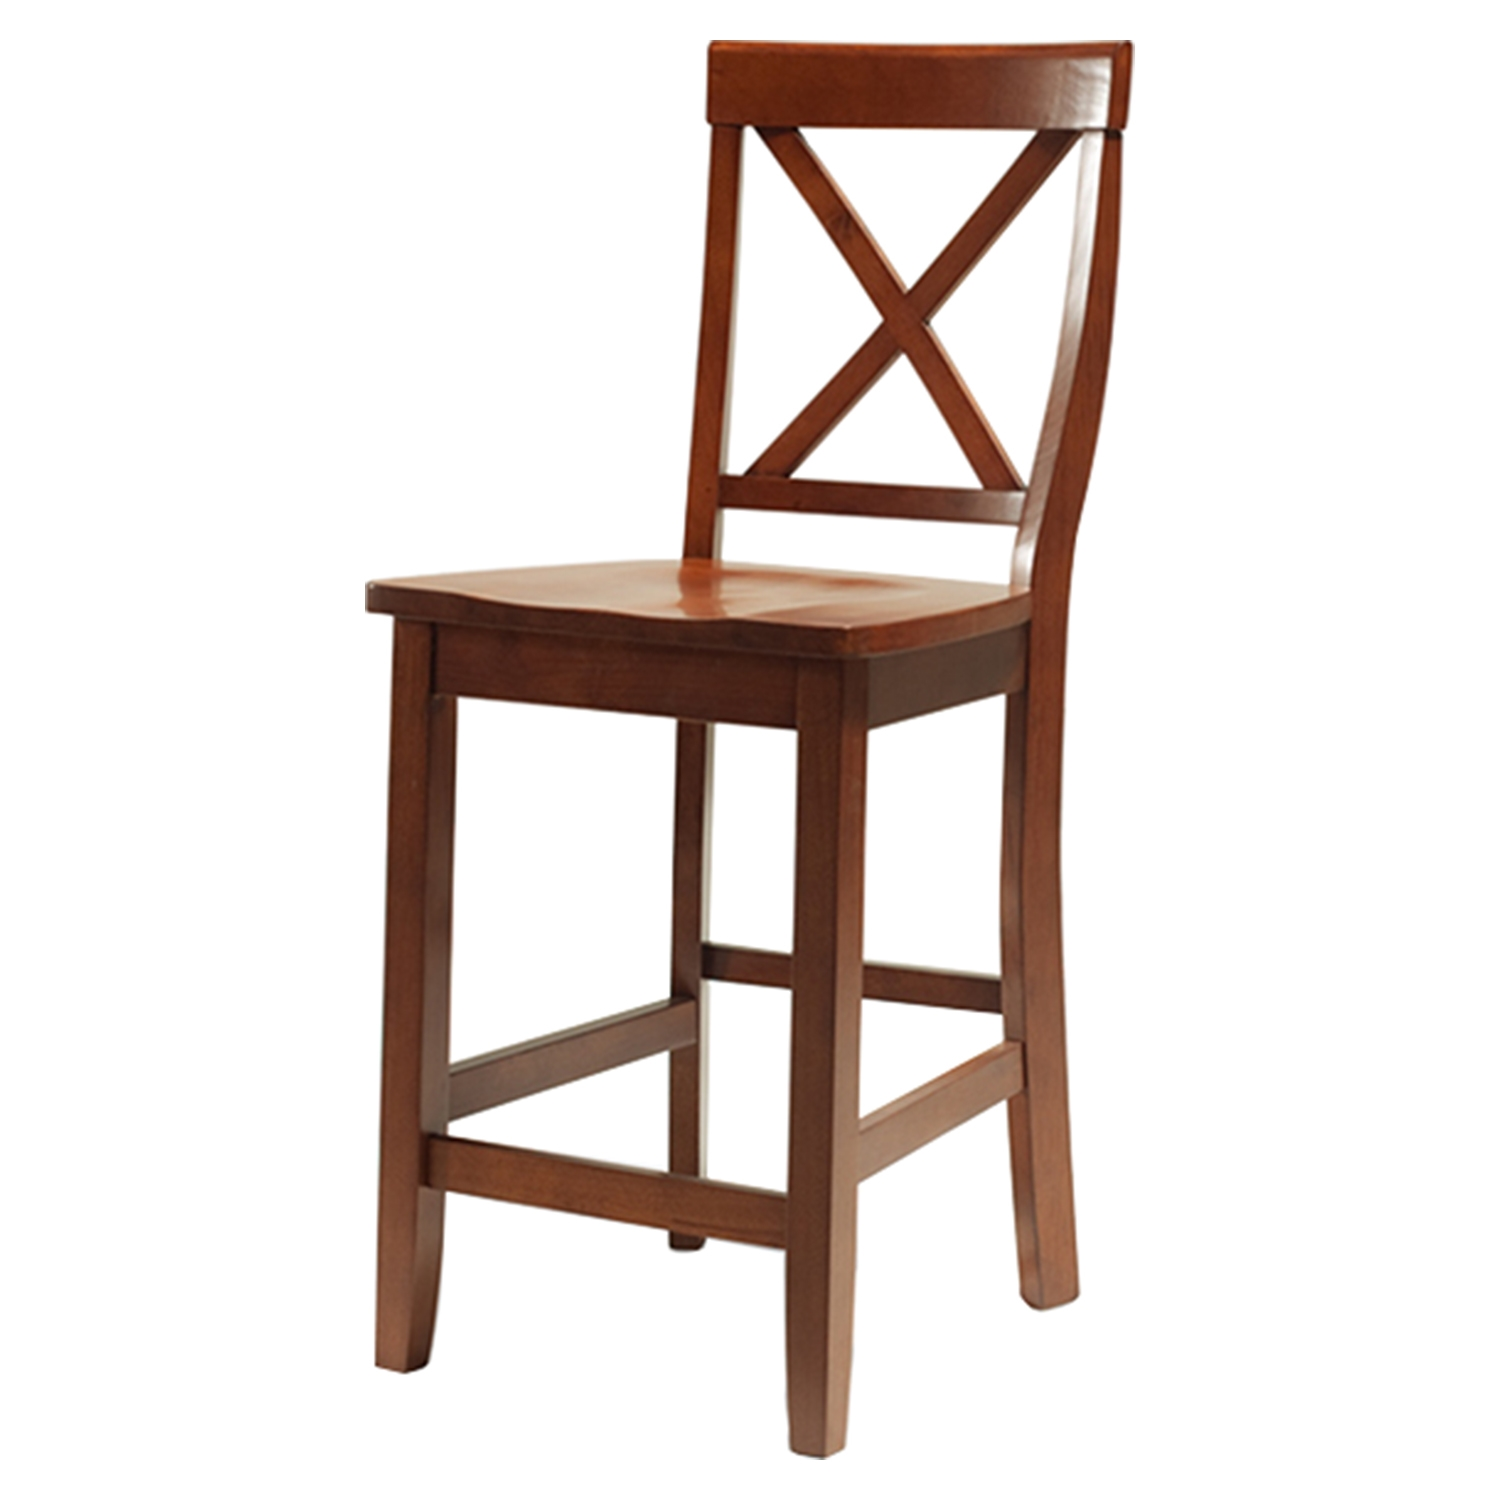 X-Back Bar Stool with 24 Inch Seat Height - Classic Cherry (Set of 2) - CROS-CF500424-CH